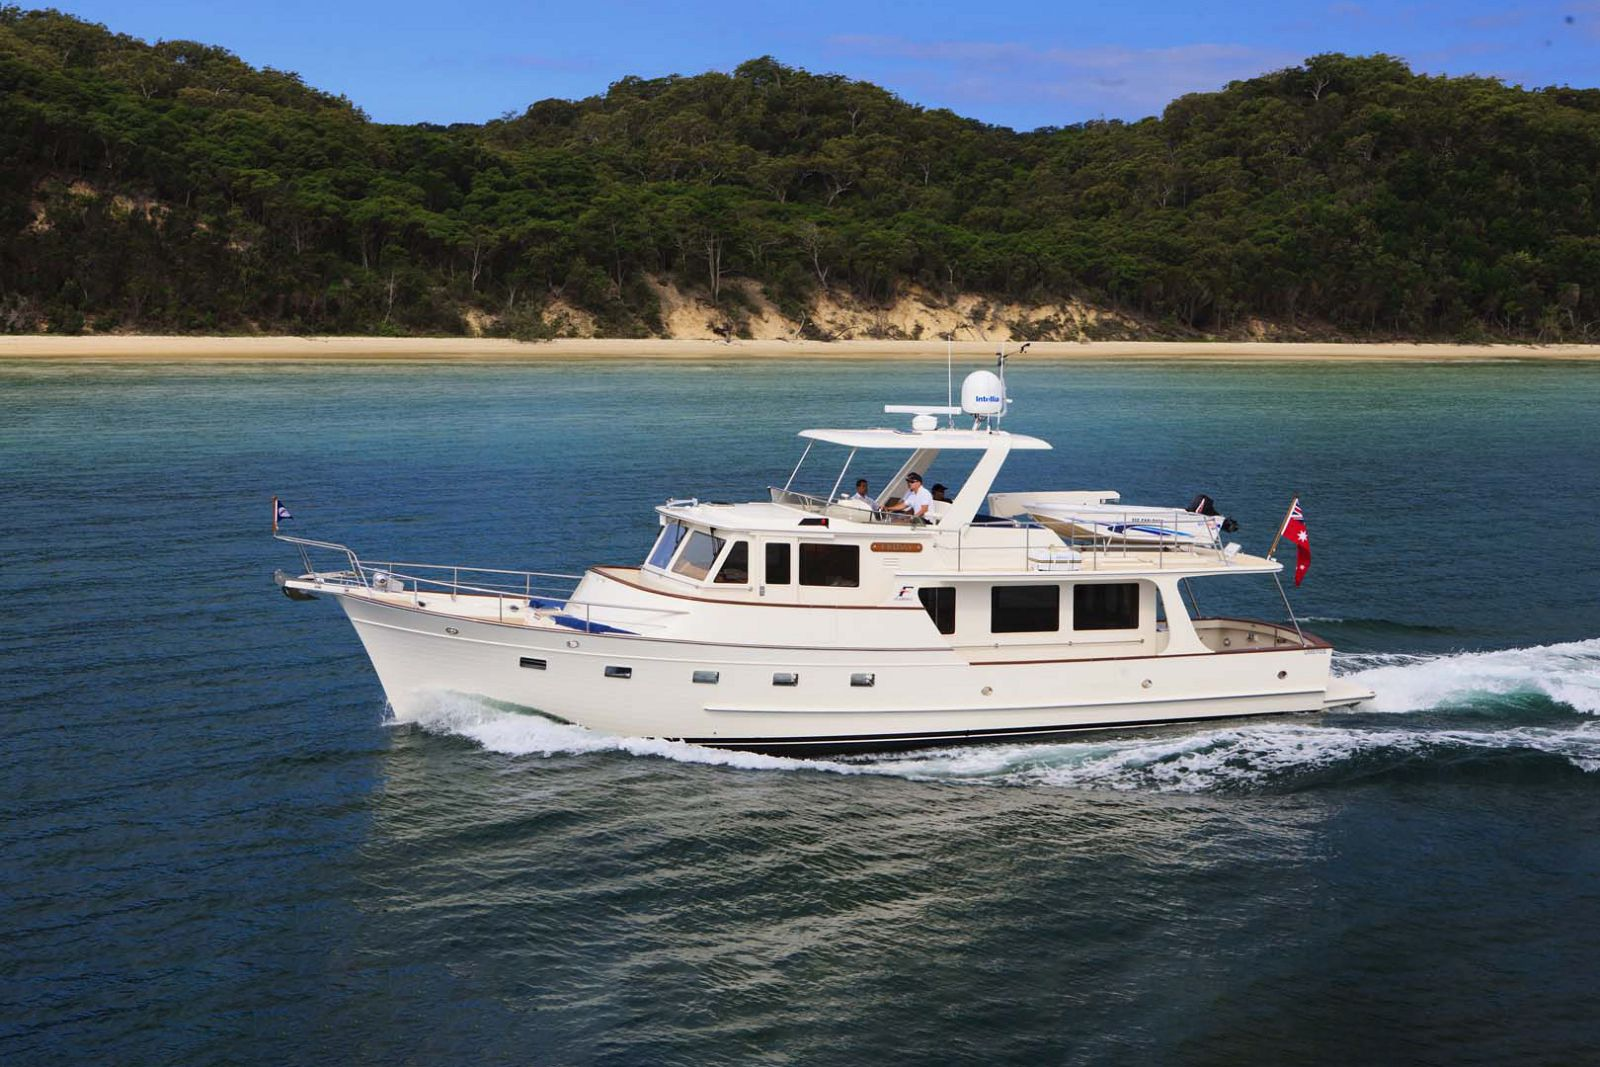 Fleming 55 Yacht For Sale The Ultimate 55 Foot Plus Expedition Cruising Boat